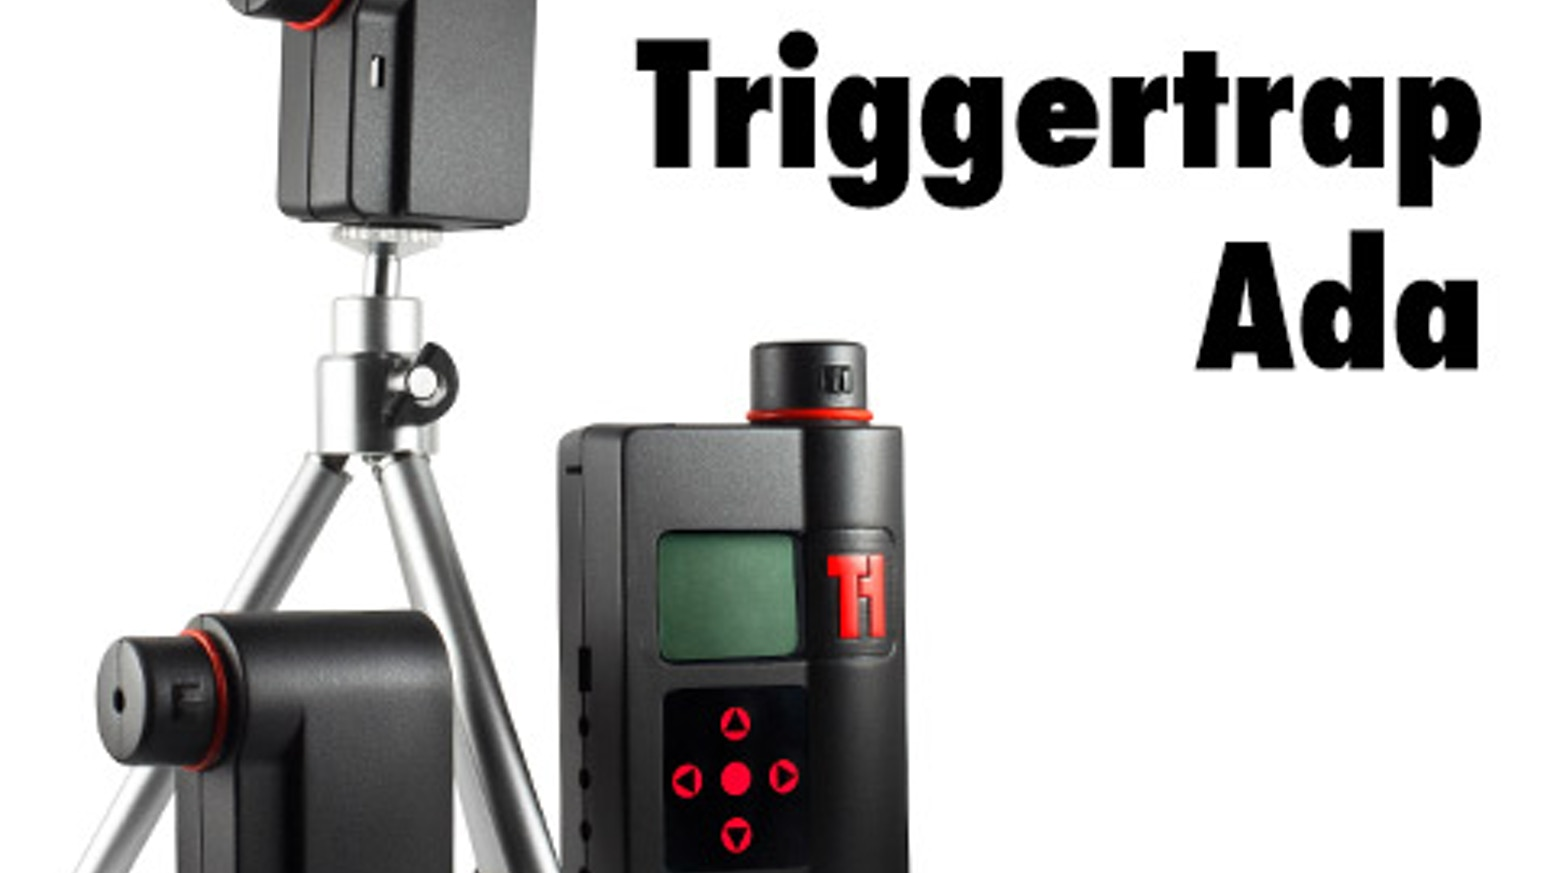 Ada is an infinitely expandable camera trigger, making high-speed, camera trap, and timelapse photography affordable for everyone.